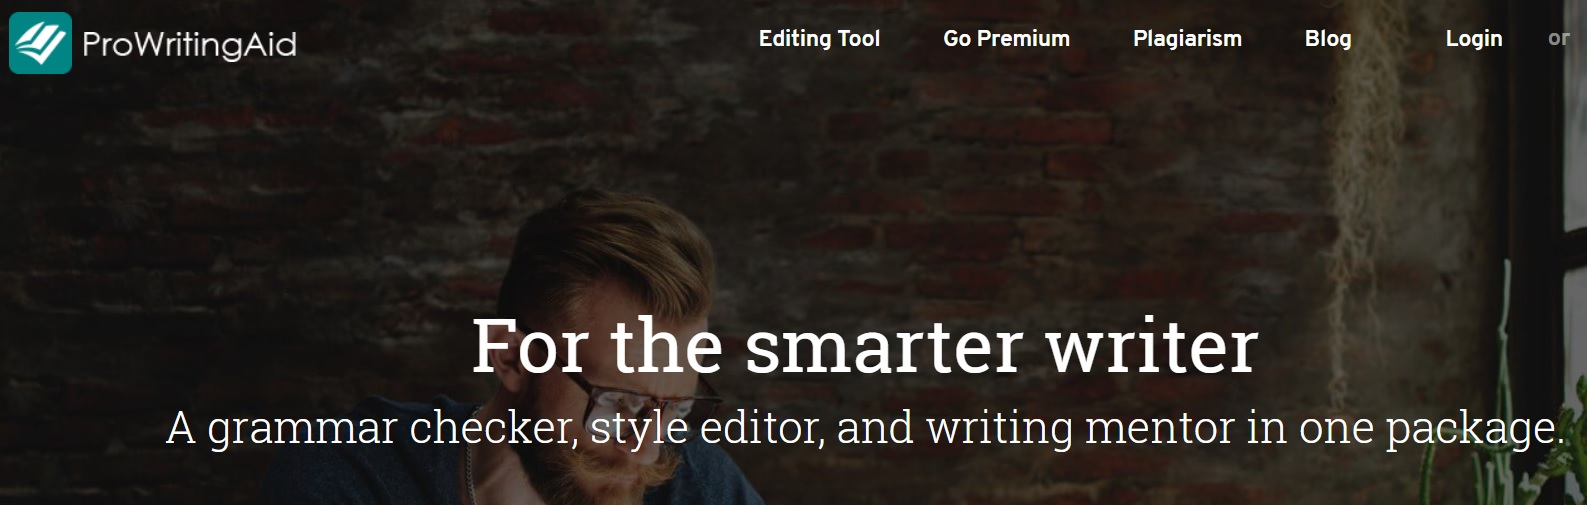 Prowritingaid - a best free website like Grammarly